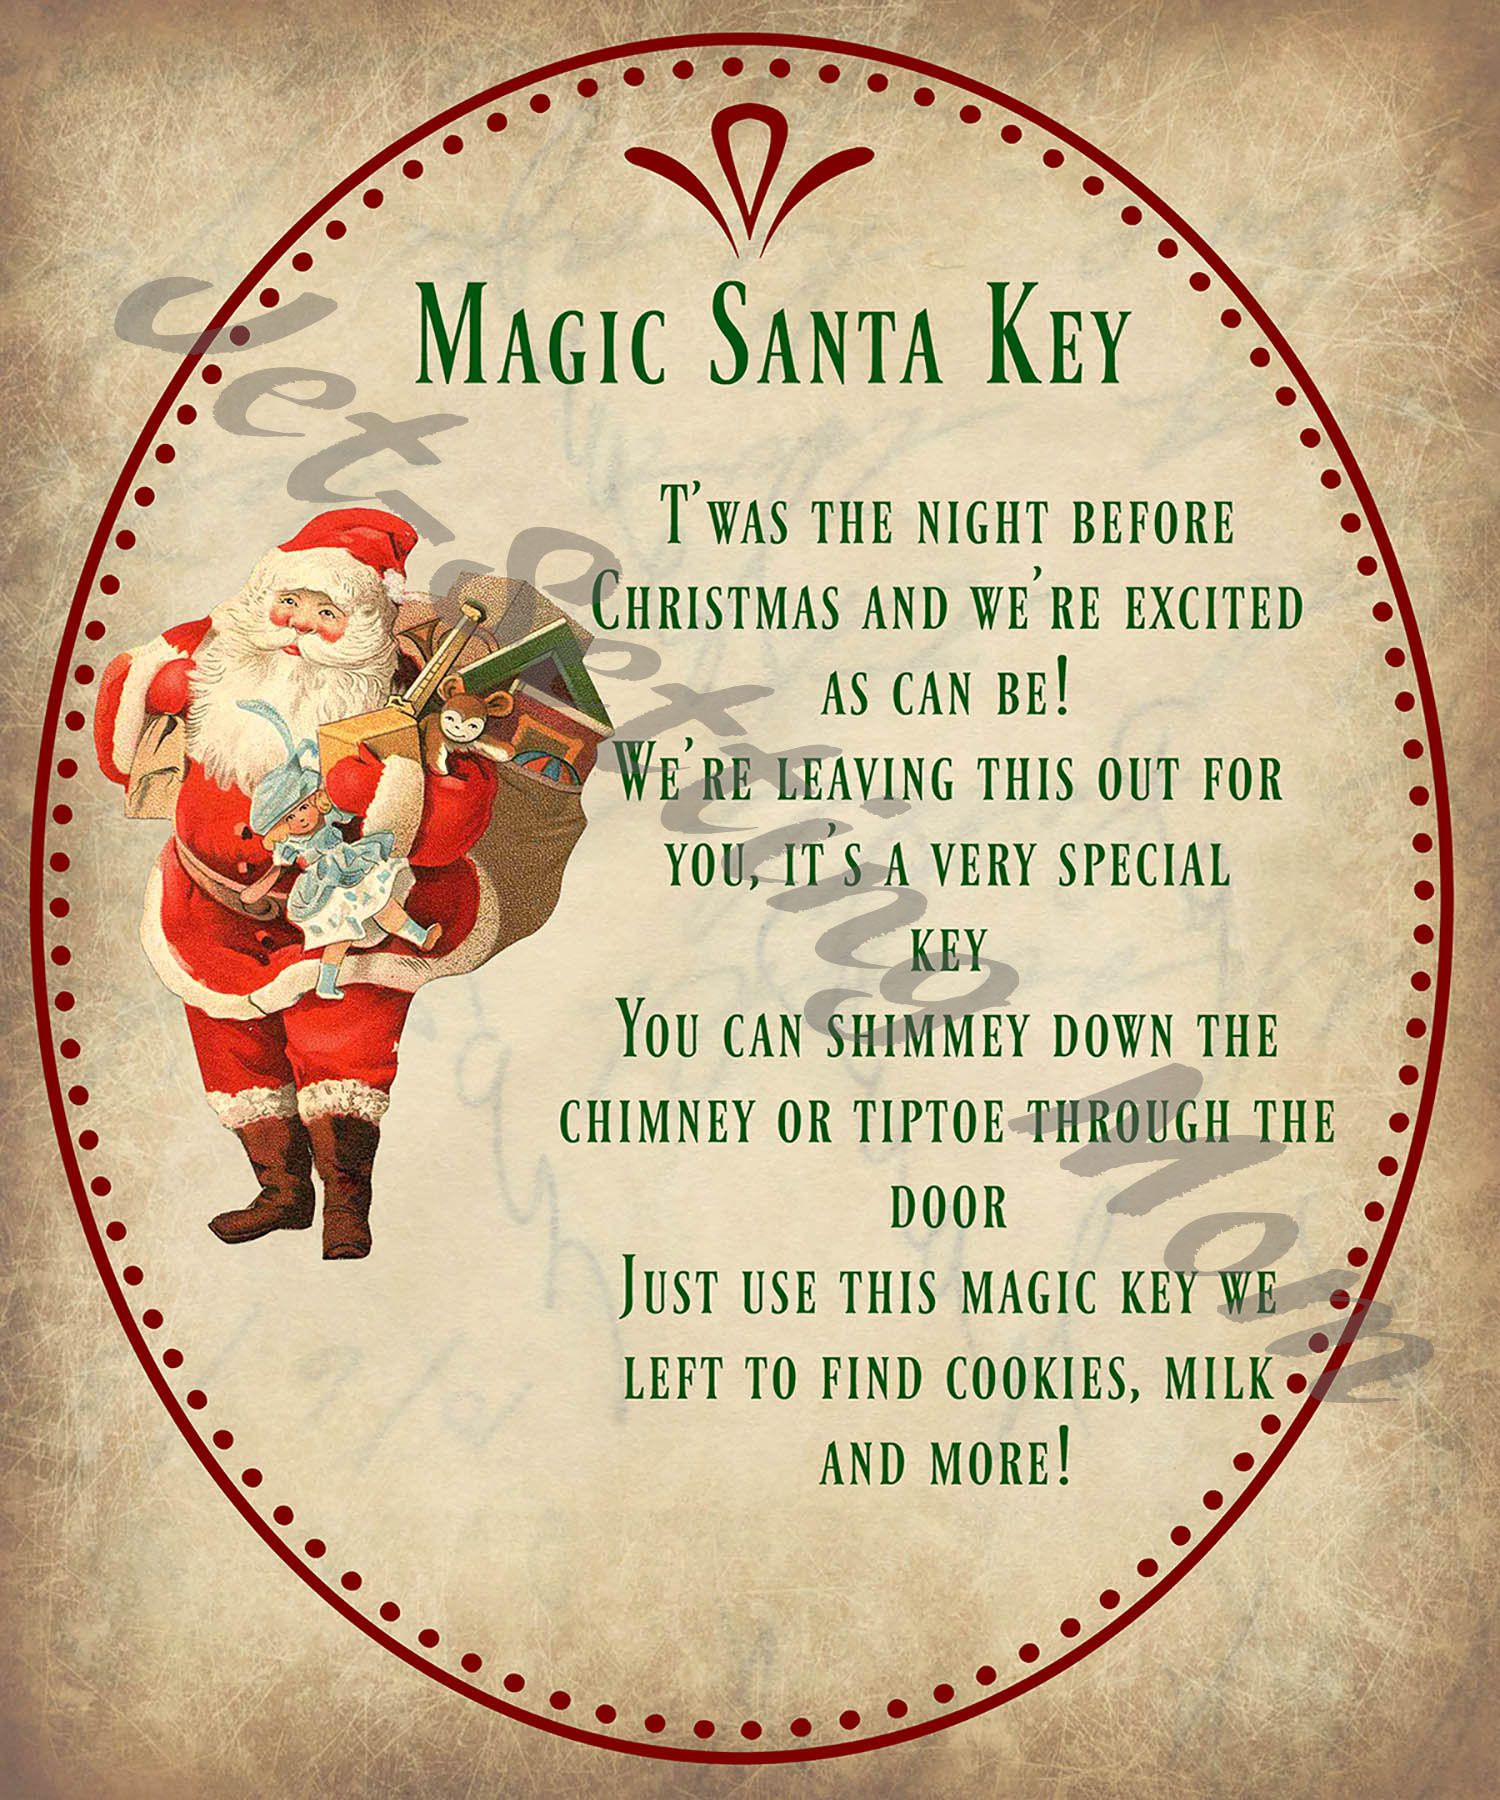 SantaS Magic Key Poem Cute For If You DonT Have A Chimmy Or Are